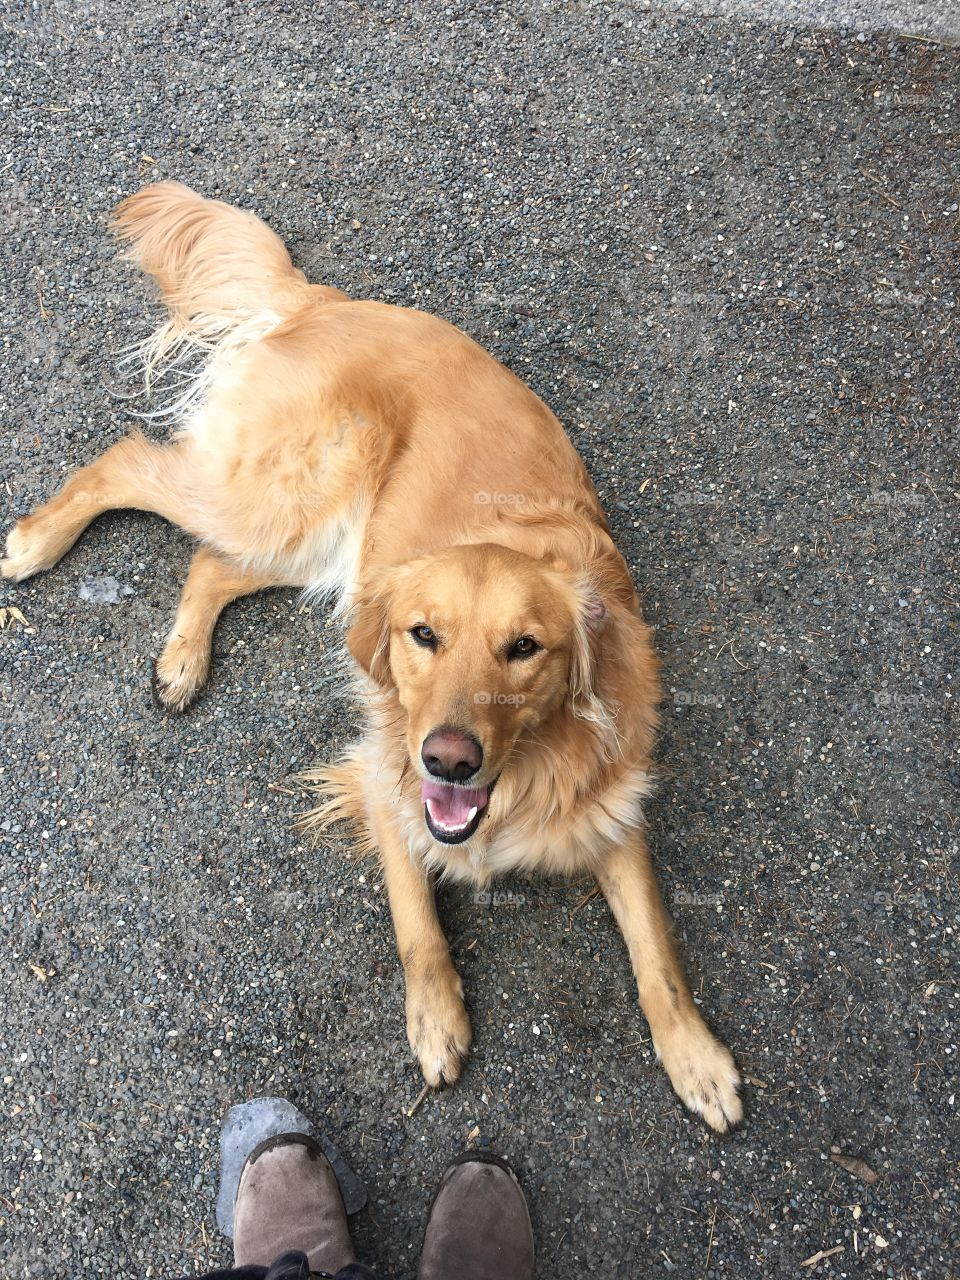 A golden retriever dog laying on the gravel looking up and panting